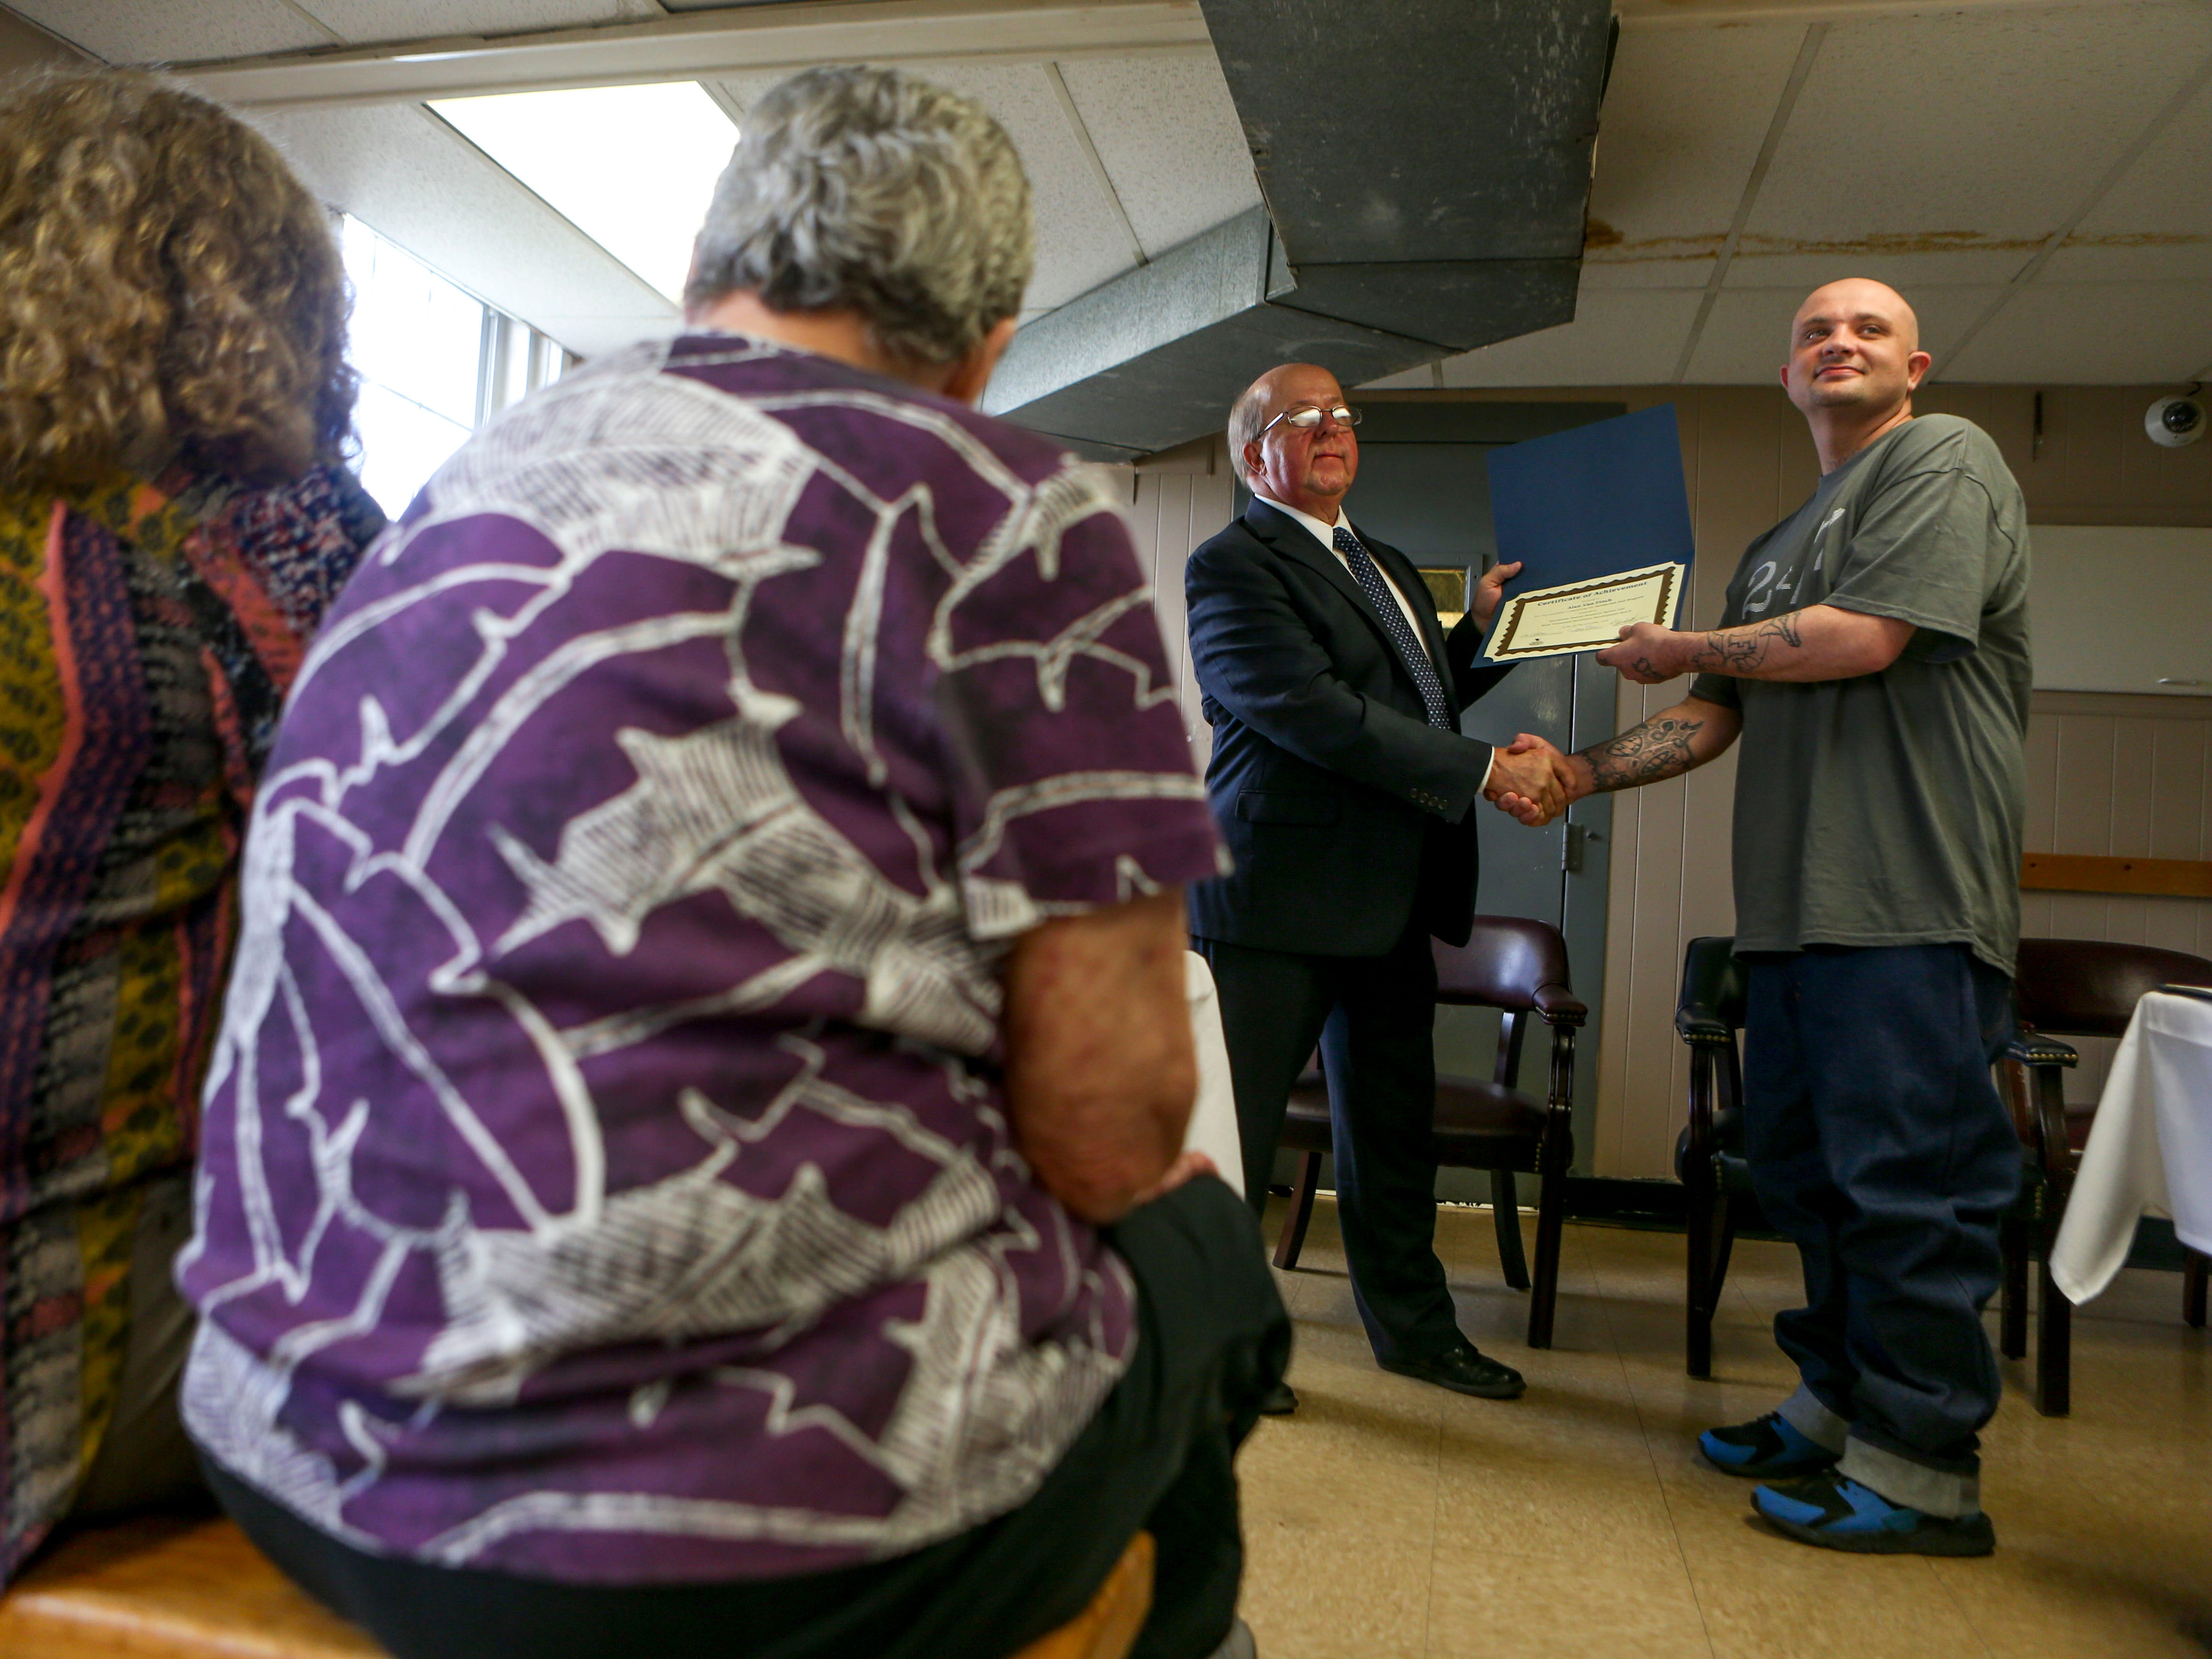 Tim Carothers presents a diploma to Alan Finch during a graduation ceremony for the InsideOut Dad program at Madison County Penal Farm in Jackson, Tenn., on Thursday, Oct. 4, 2018.